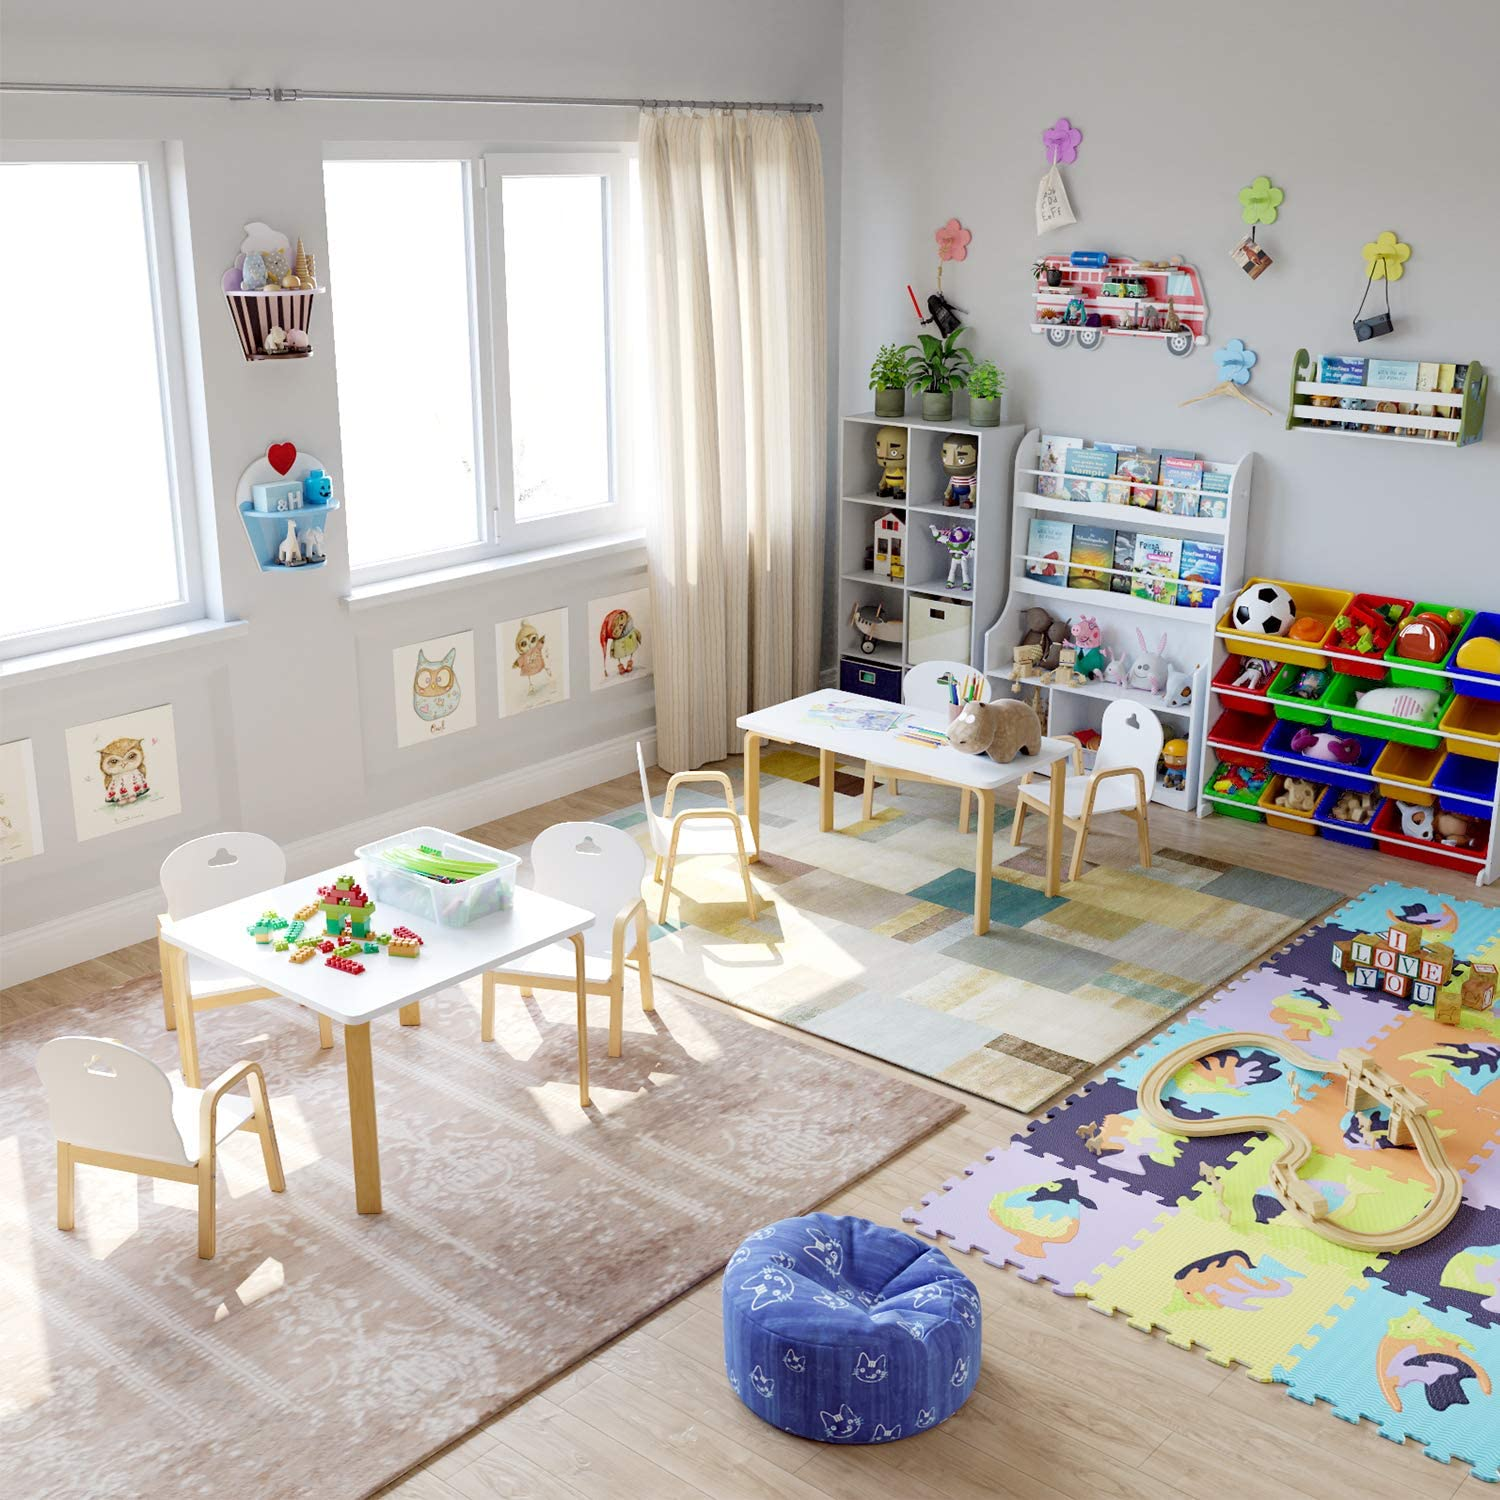 Homfa Table and Chairs Set for Toddler Kids Activity Table Height Adjustable Chairs Nursery School Home Playroom